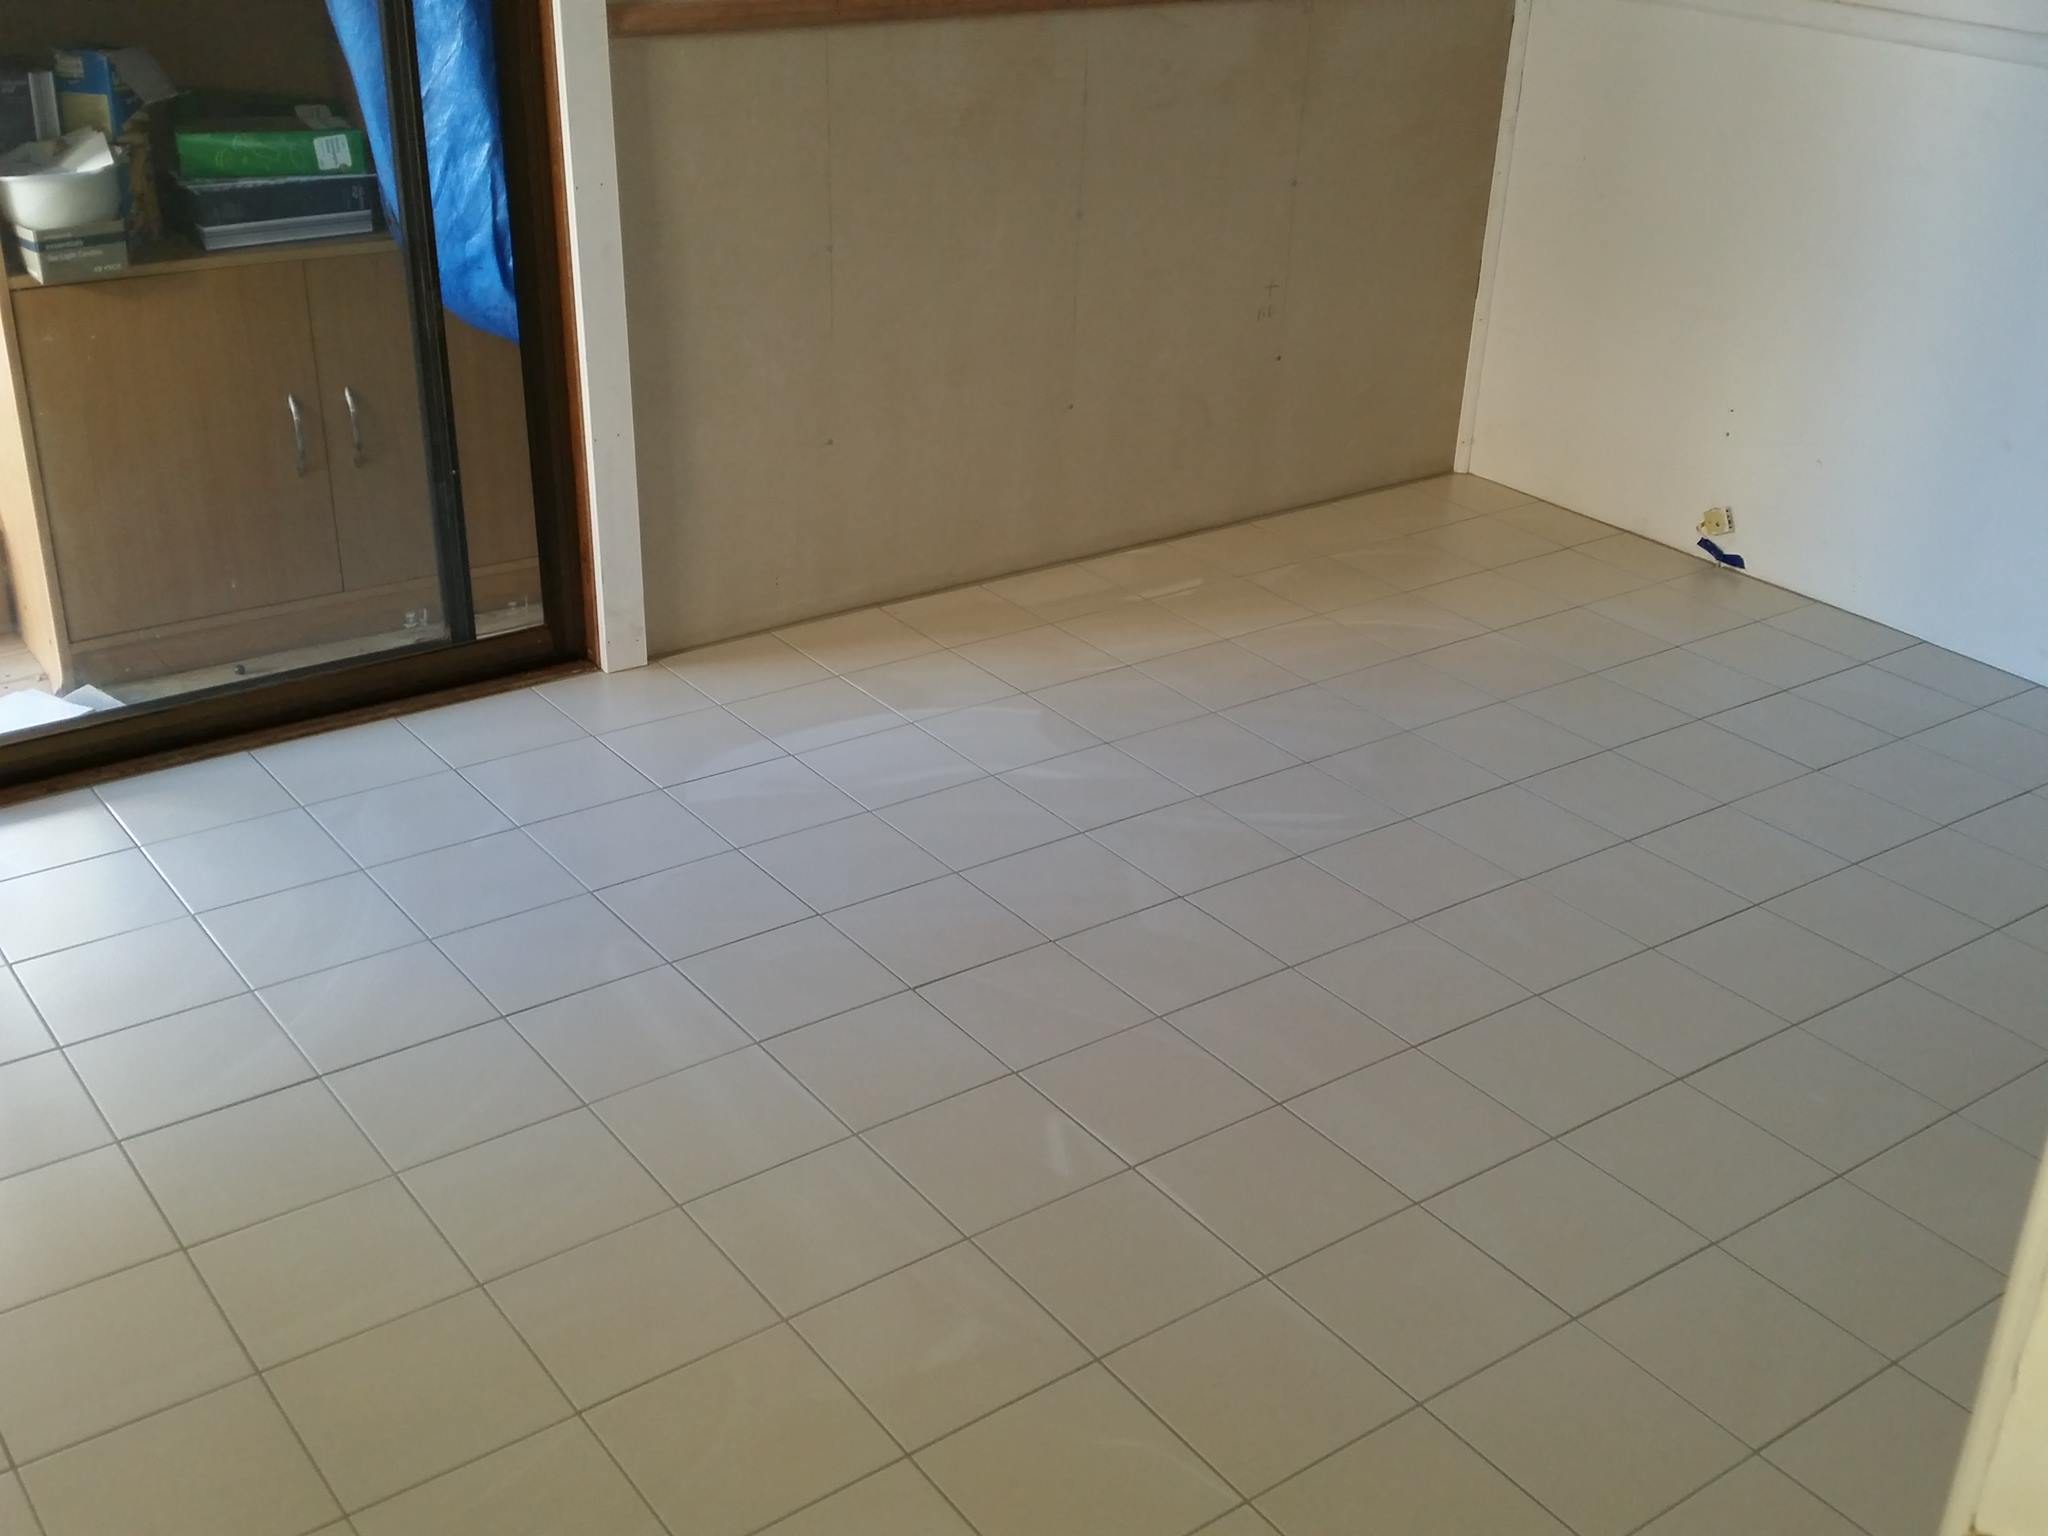 new rumpus room floor to match the bathroom off to the left